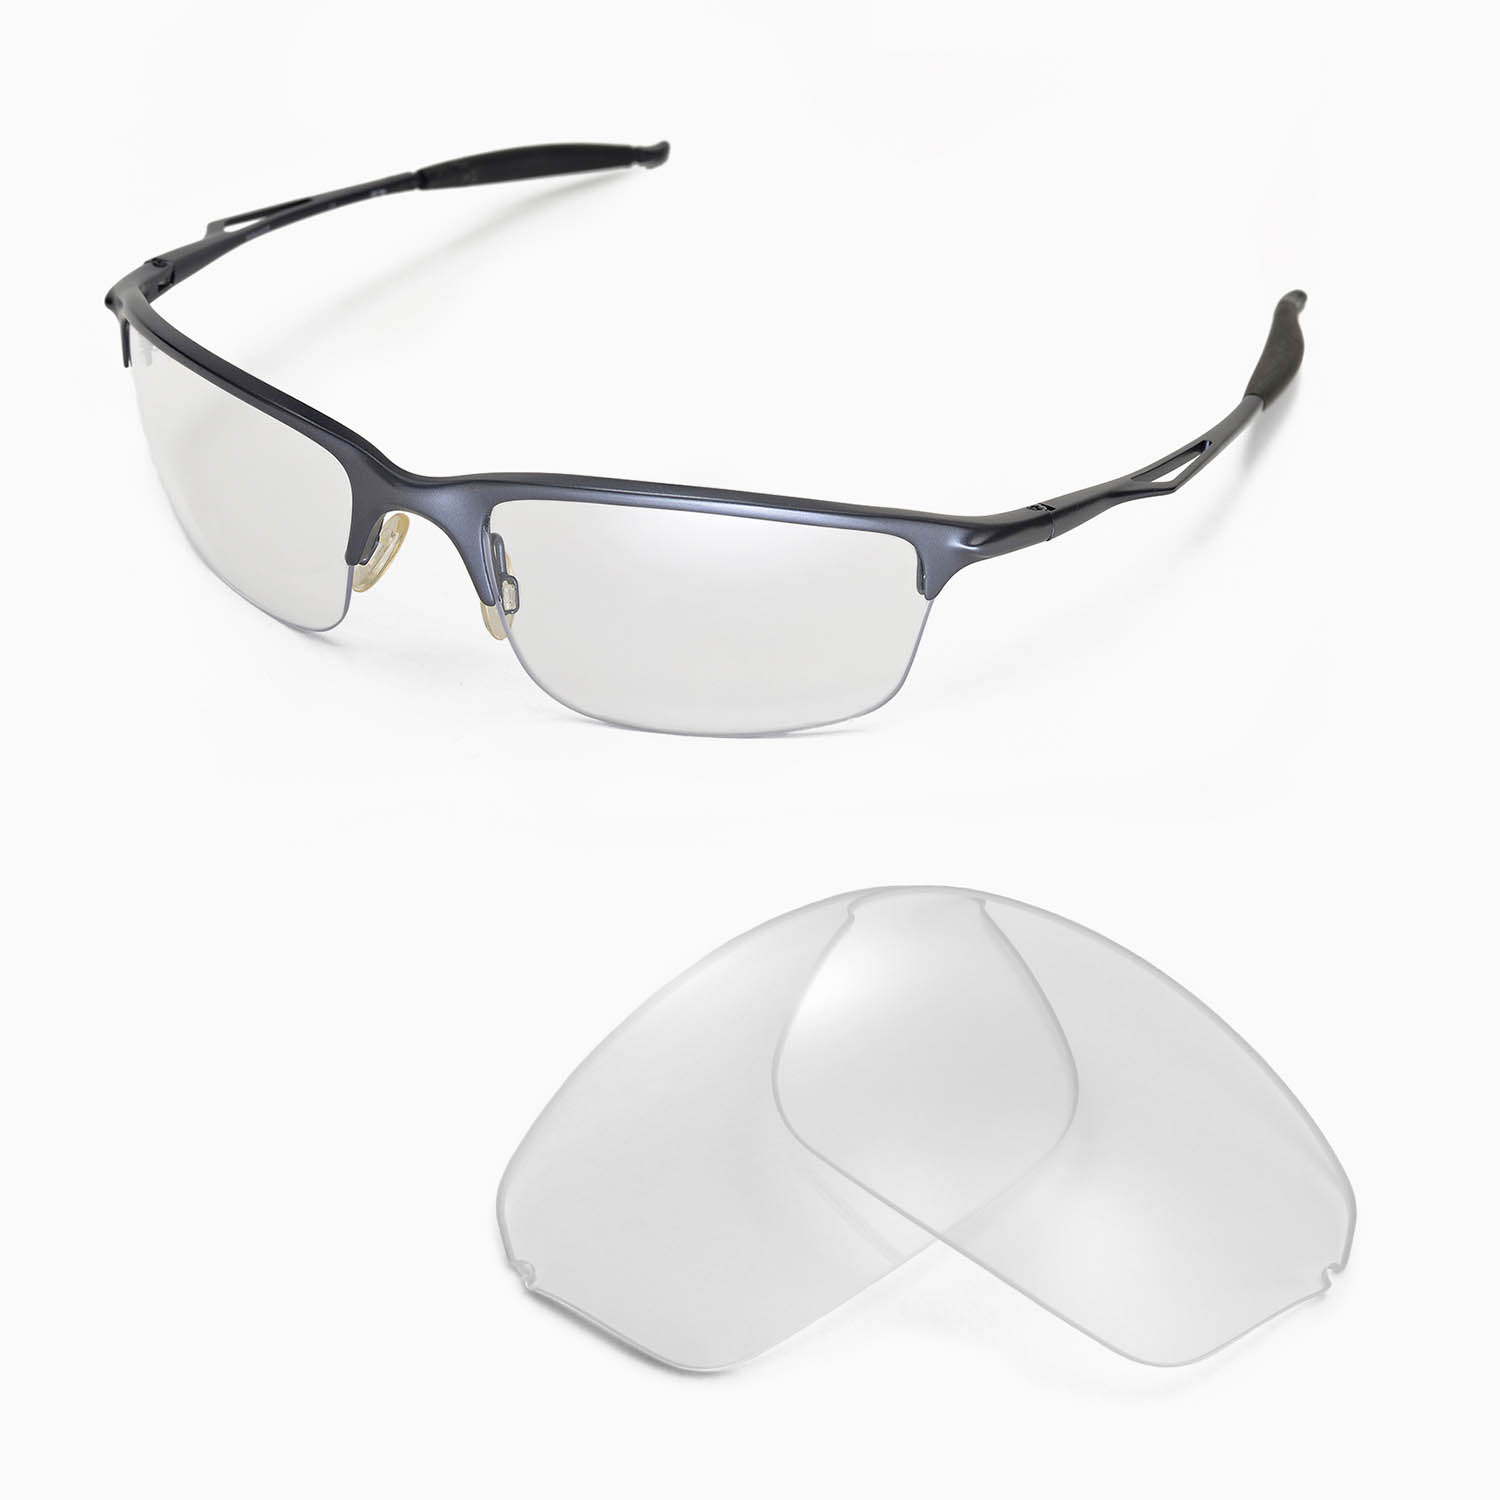 Frameless Glasses Repair Parts : Oakley Half Wires